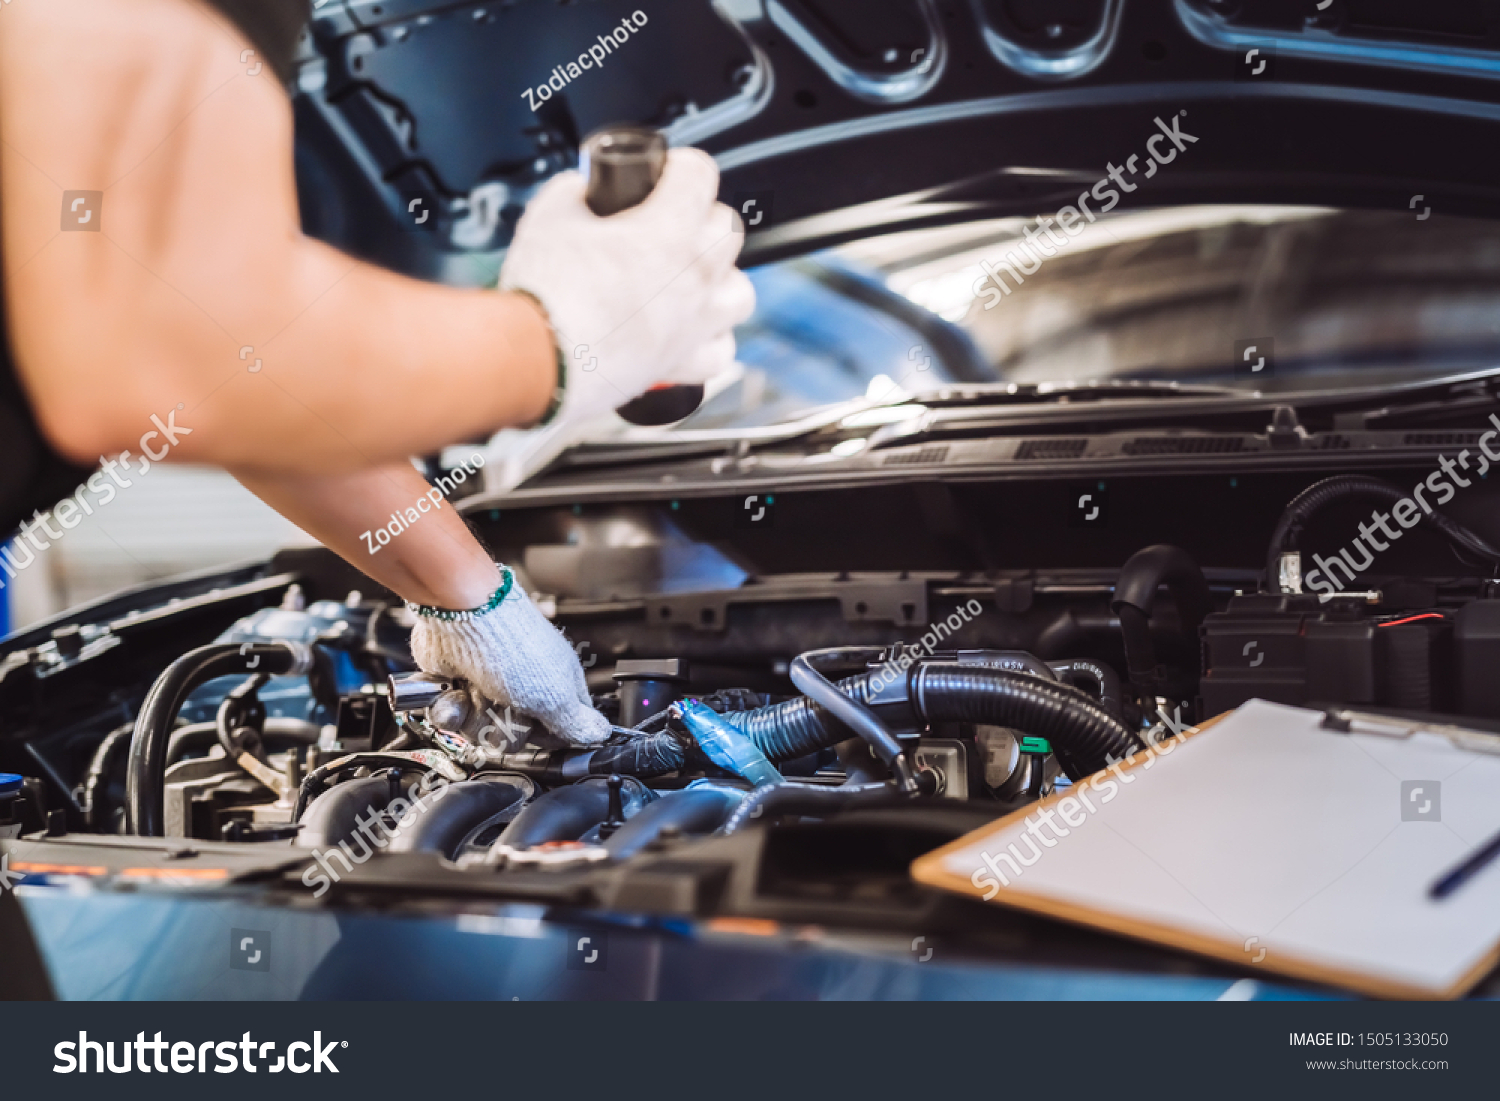 Mechanic man examining and maintenance to customer the engine a vehicle car hood, Safety inspection test engine before customer drive on a long journey, transportation repair service center #1505133050